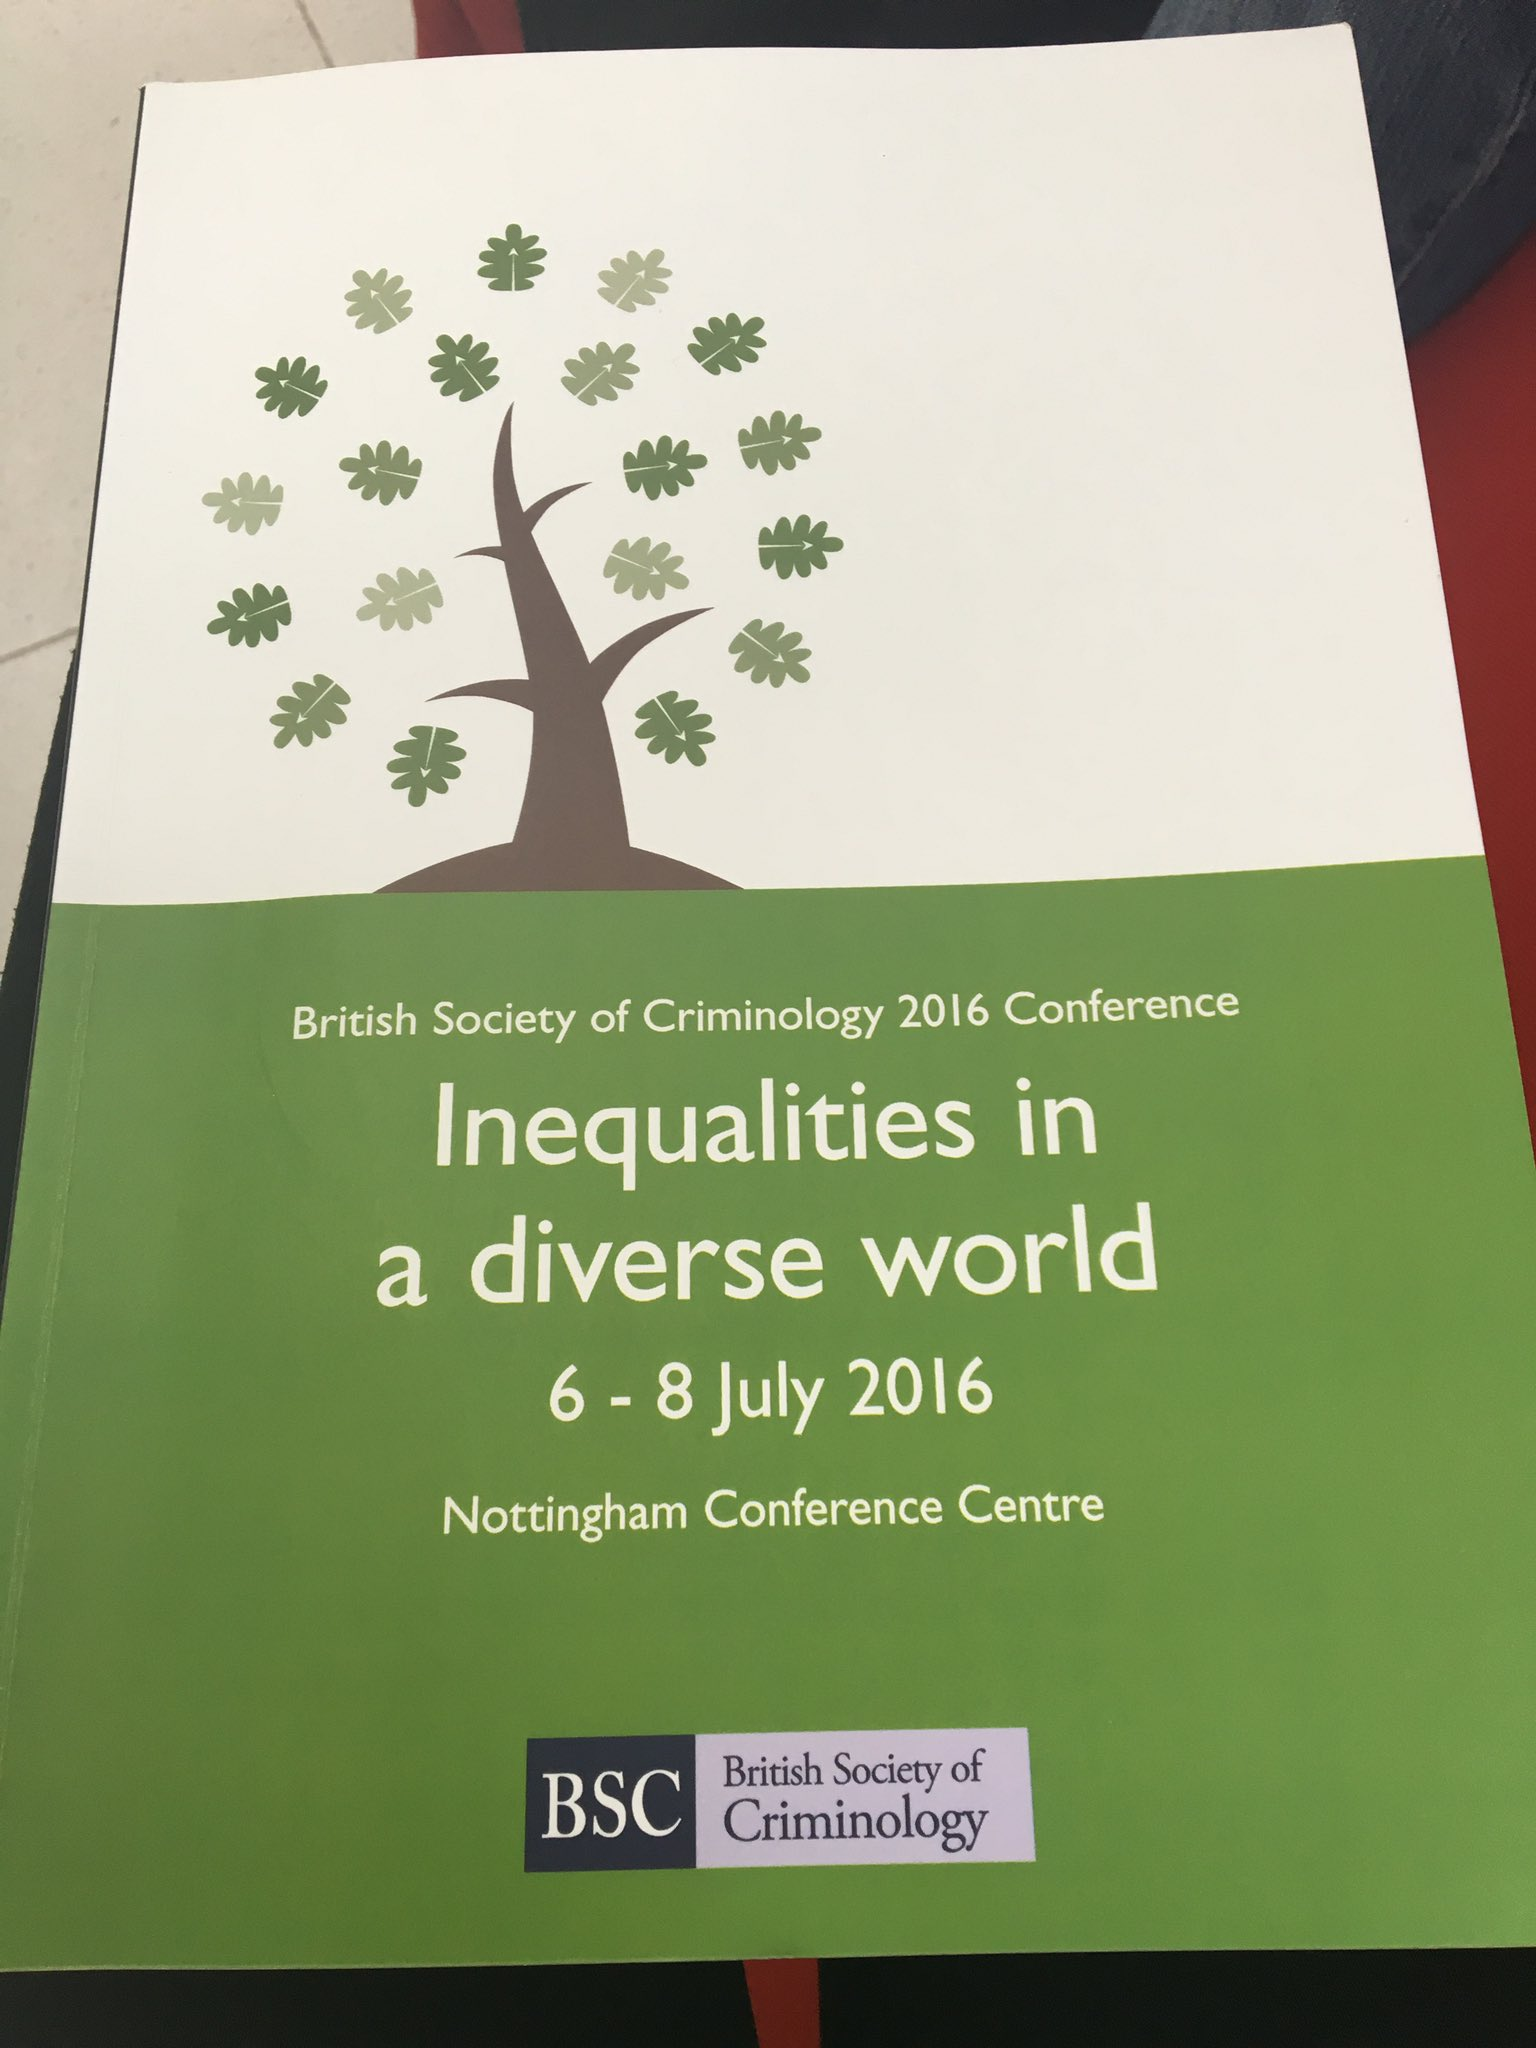 Looking forward to Day 2 of the #BSCConf16. https://t.co/SPVx6NXpyP